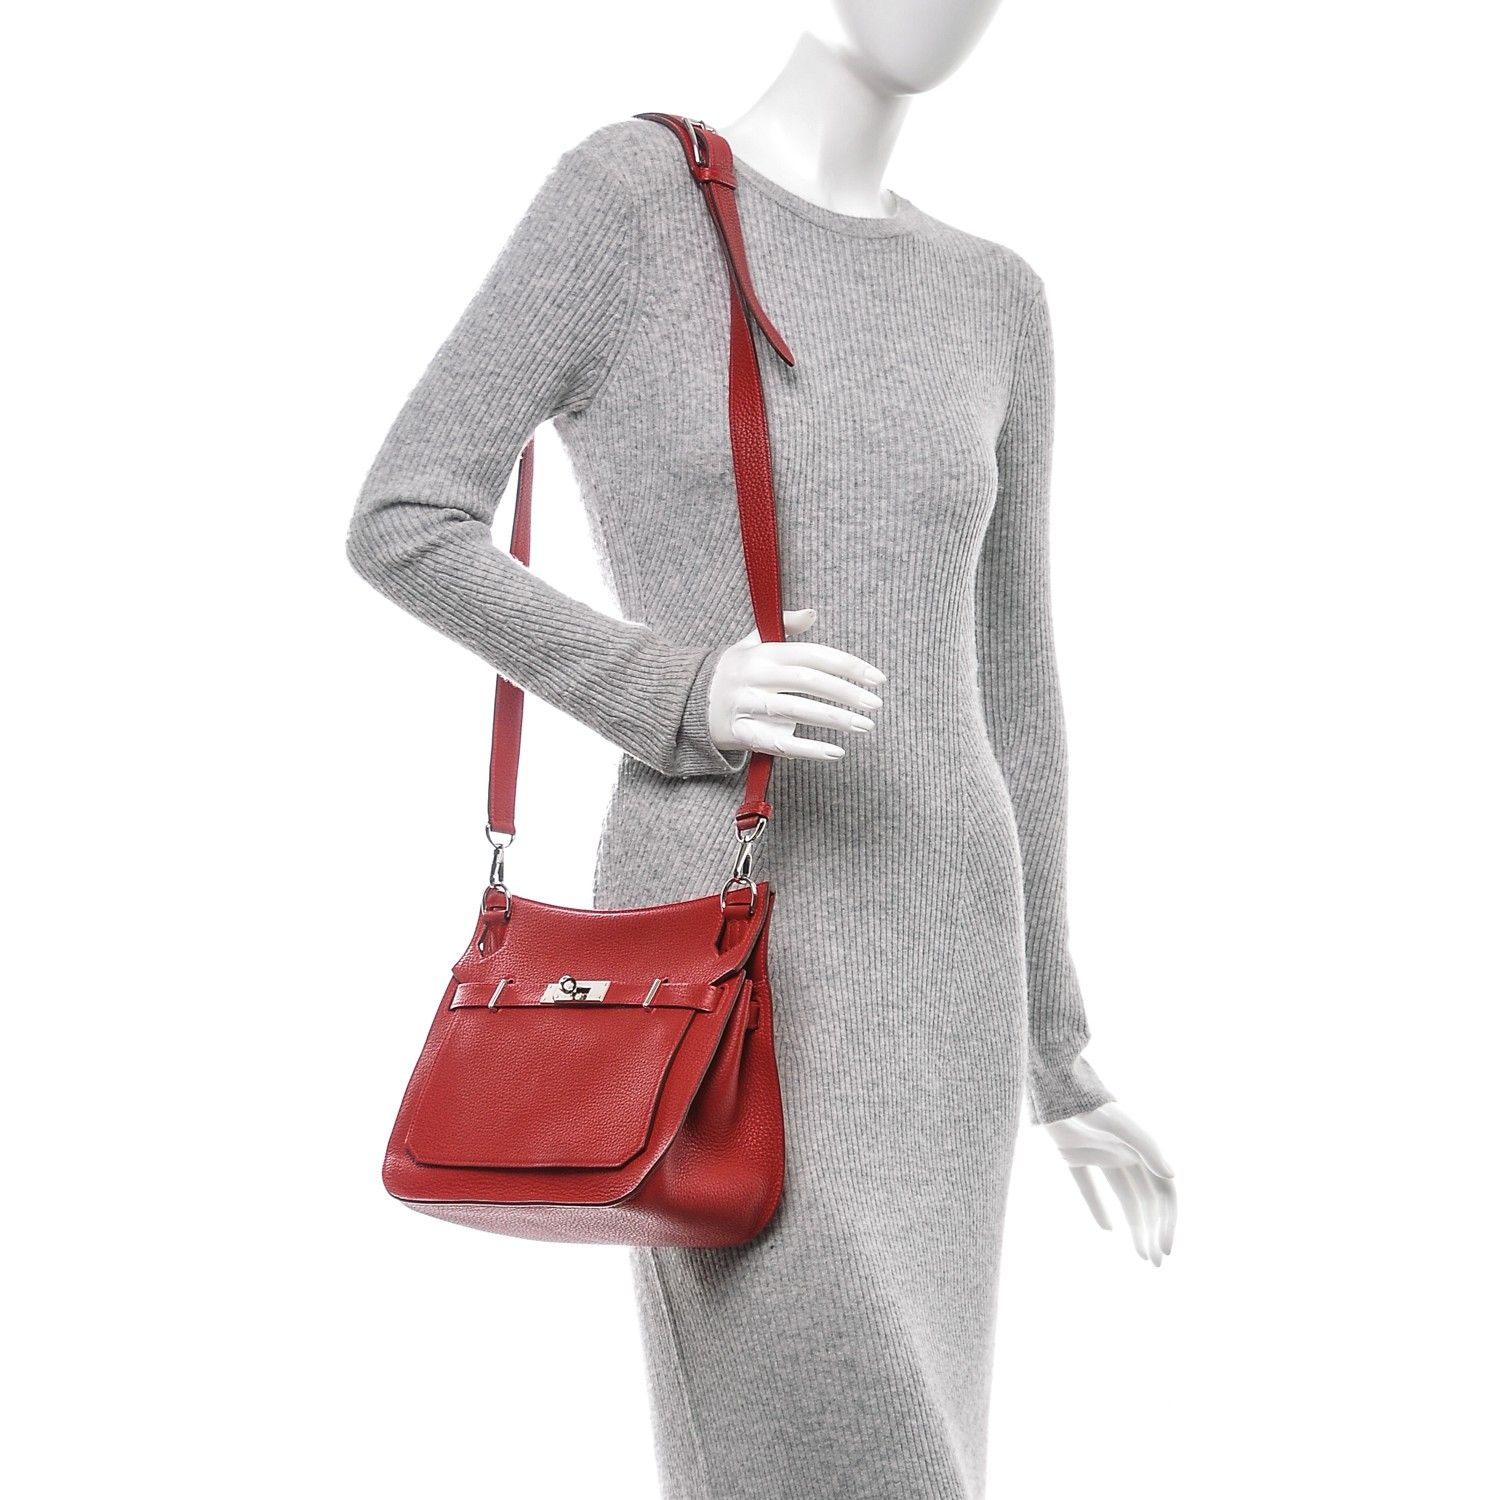 This is an authentic HERMES Taurillon Clemence Jypsiere Gypsy 28 in Rouge  Casaque. This stylish 166601d645bf2